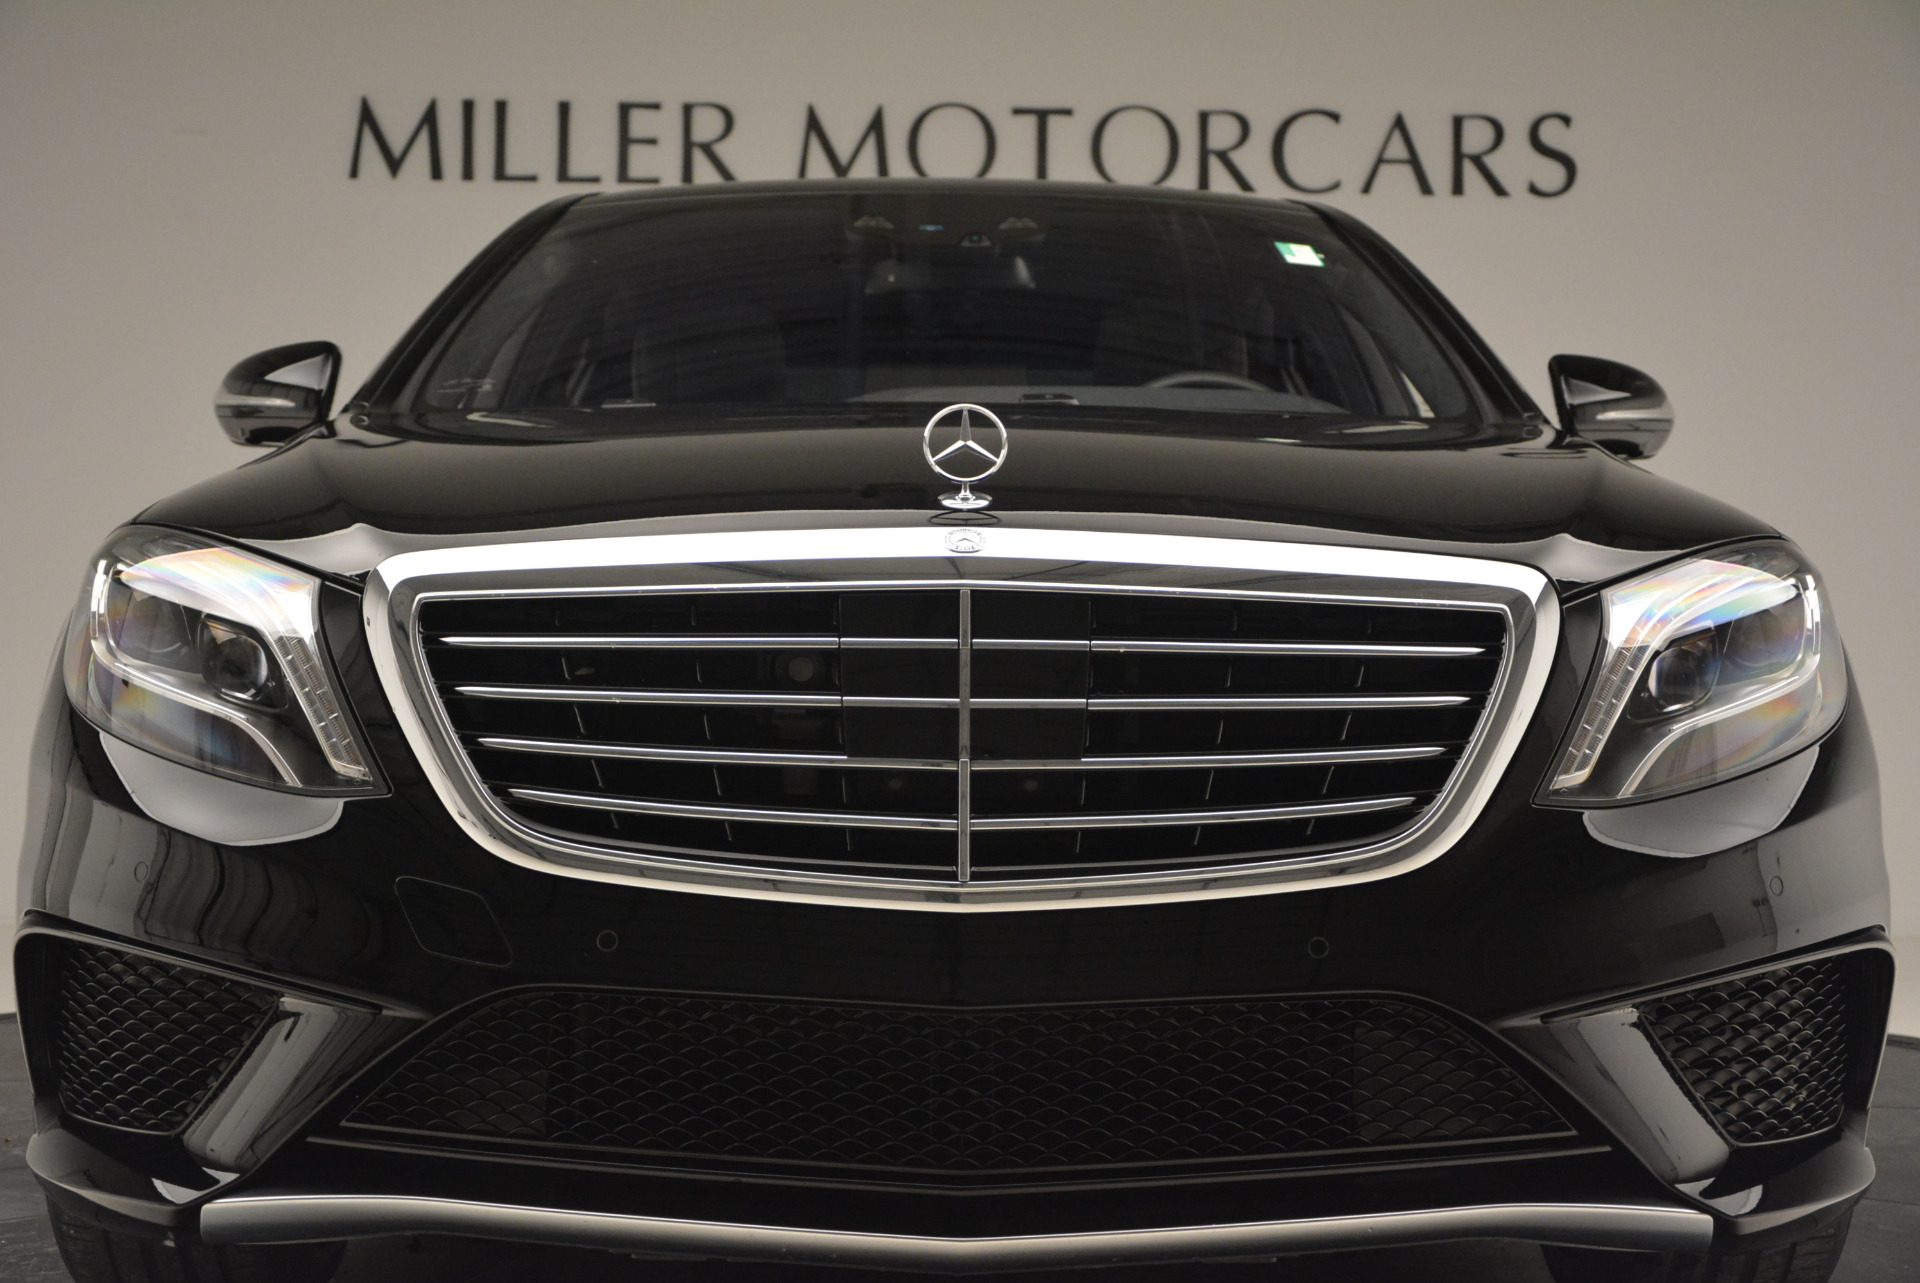 Used 2014 Mercedes Benz S-Class S 63 AMG For Sale In Westport, CT 912_p13